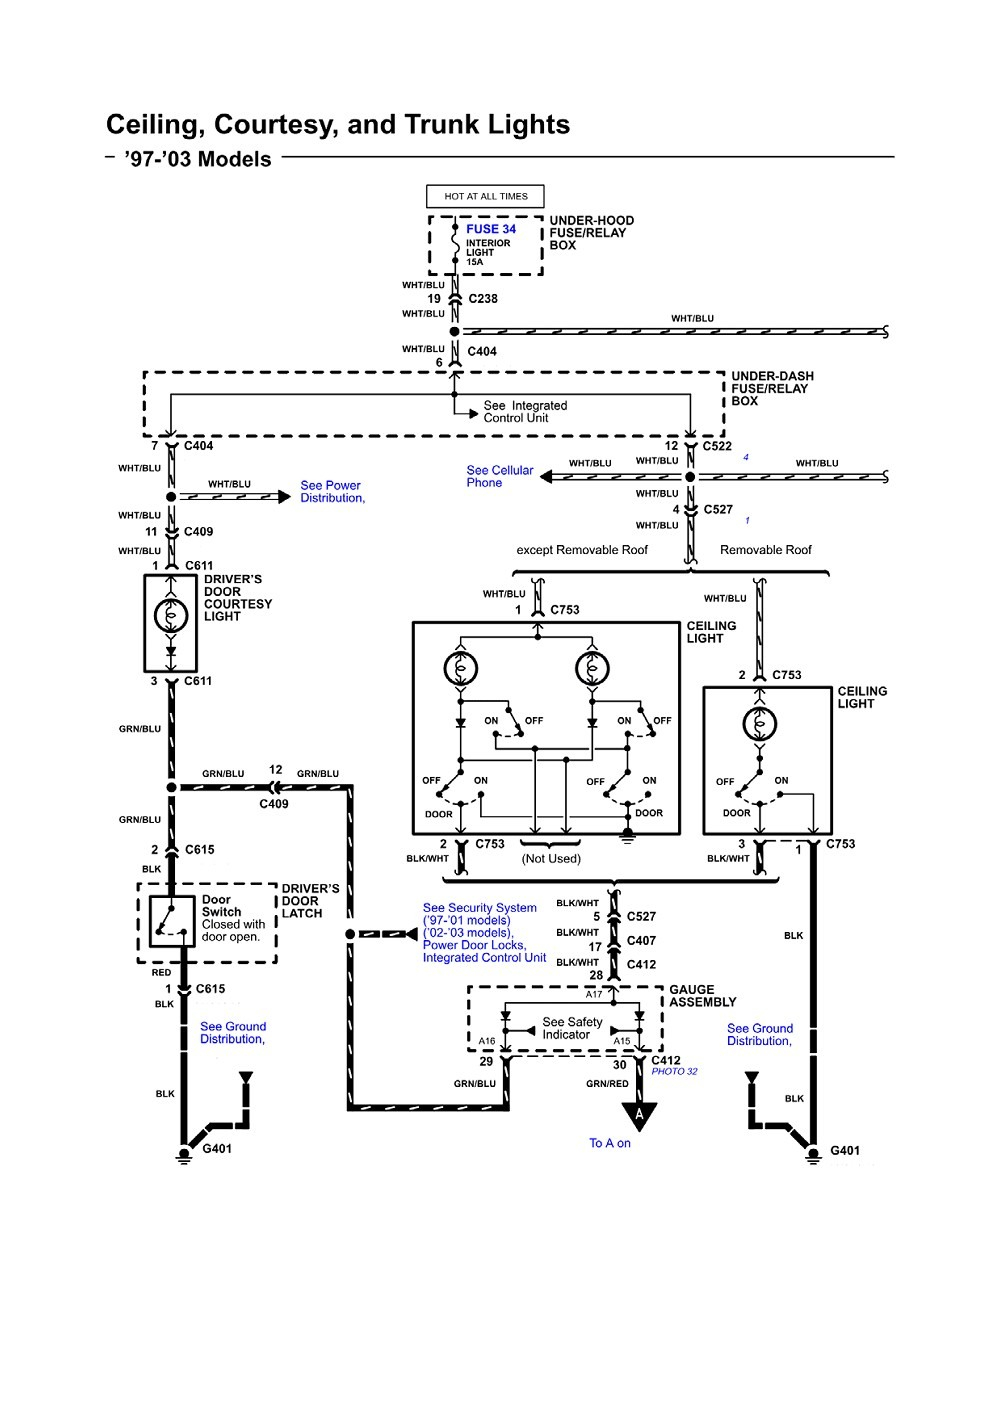 Wiring Diagram Harbor Breeze Ceiling Fan Remote - Electrical wiring on harbor breeze wall switch diagram, ceiling fan electrical wiring diagram, harbor breeze wiring electric fans, hunter ceiling fan remote control wiring diagram, harbor breeze ceiling fan capacitor, harbor breeze remote wiring diagram efu12lc190el1, hampton bay fan switch diagram, hunter fan switch wiring diagram, harbor breeze ceiling fan parts, broan ceiling fan wiring diagram, harbor breeze 3 speed wiring diagram, saratoga harbor breeze fan wiring diagram, harbor breeze exhaust fan wiring, harbor breeze 3 speed fan switch wiring, harbor breeze ceiling fan remote diagram, harbor breeze wiring schematic, zing ear switch ceiling fan wiring diagram, ceiling fan pull switch diagram, harbor breeze bellhaven 2 wiring diagrams, harbor breeze fan wiring guide,